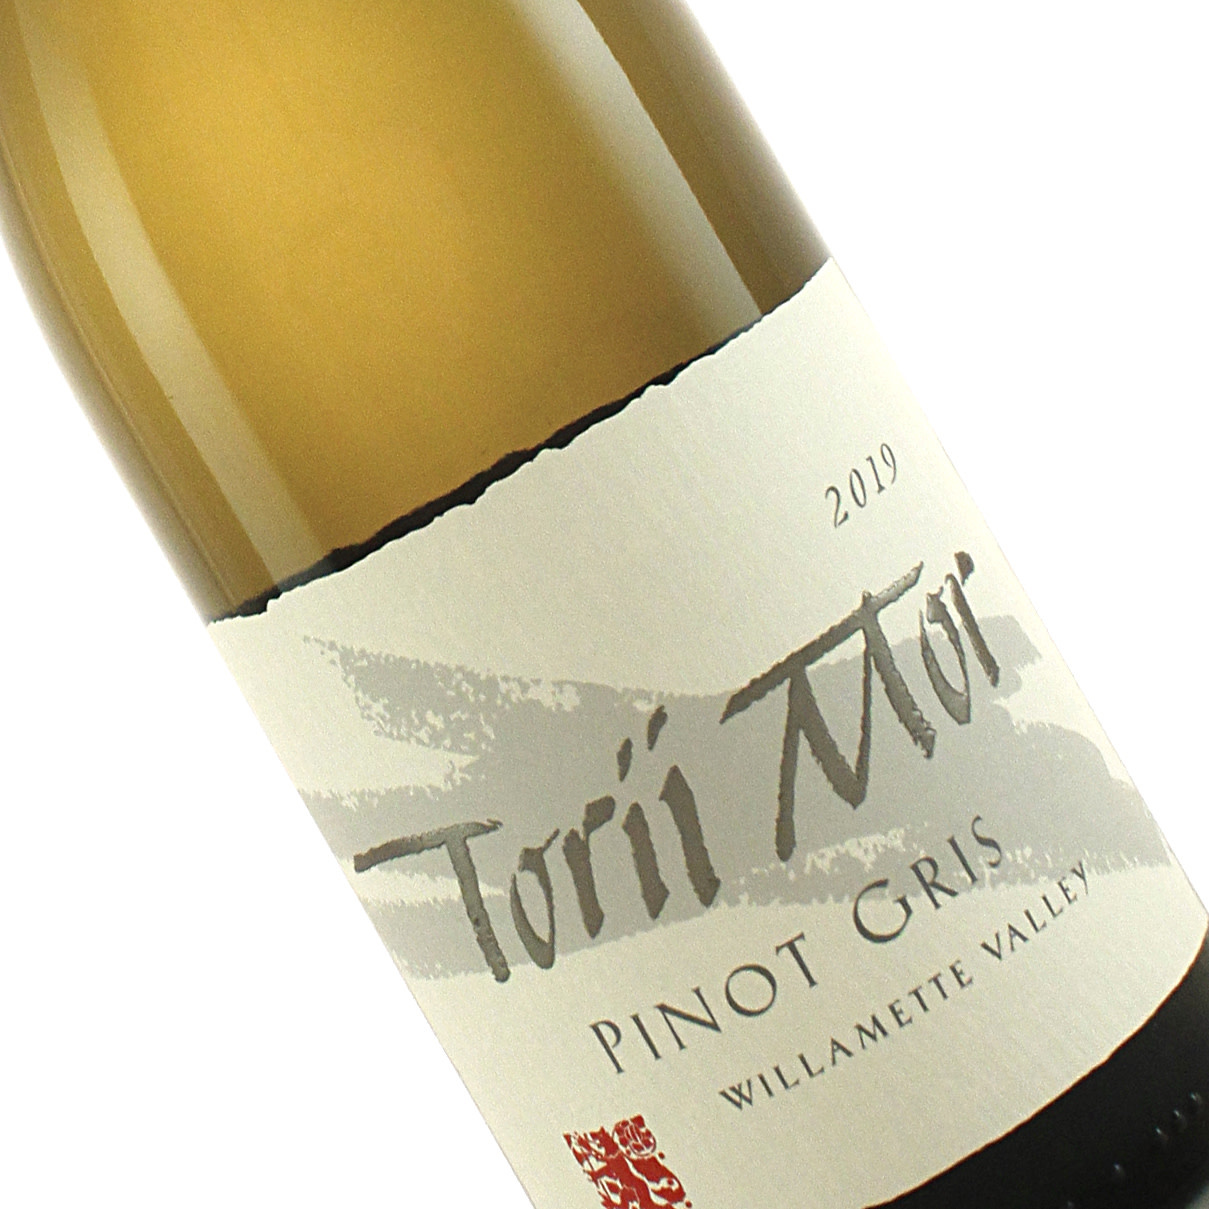 Torii Mor 2019 Pinot Gris, Willamette Valley, Oregon